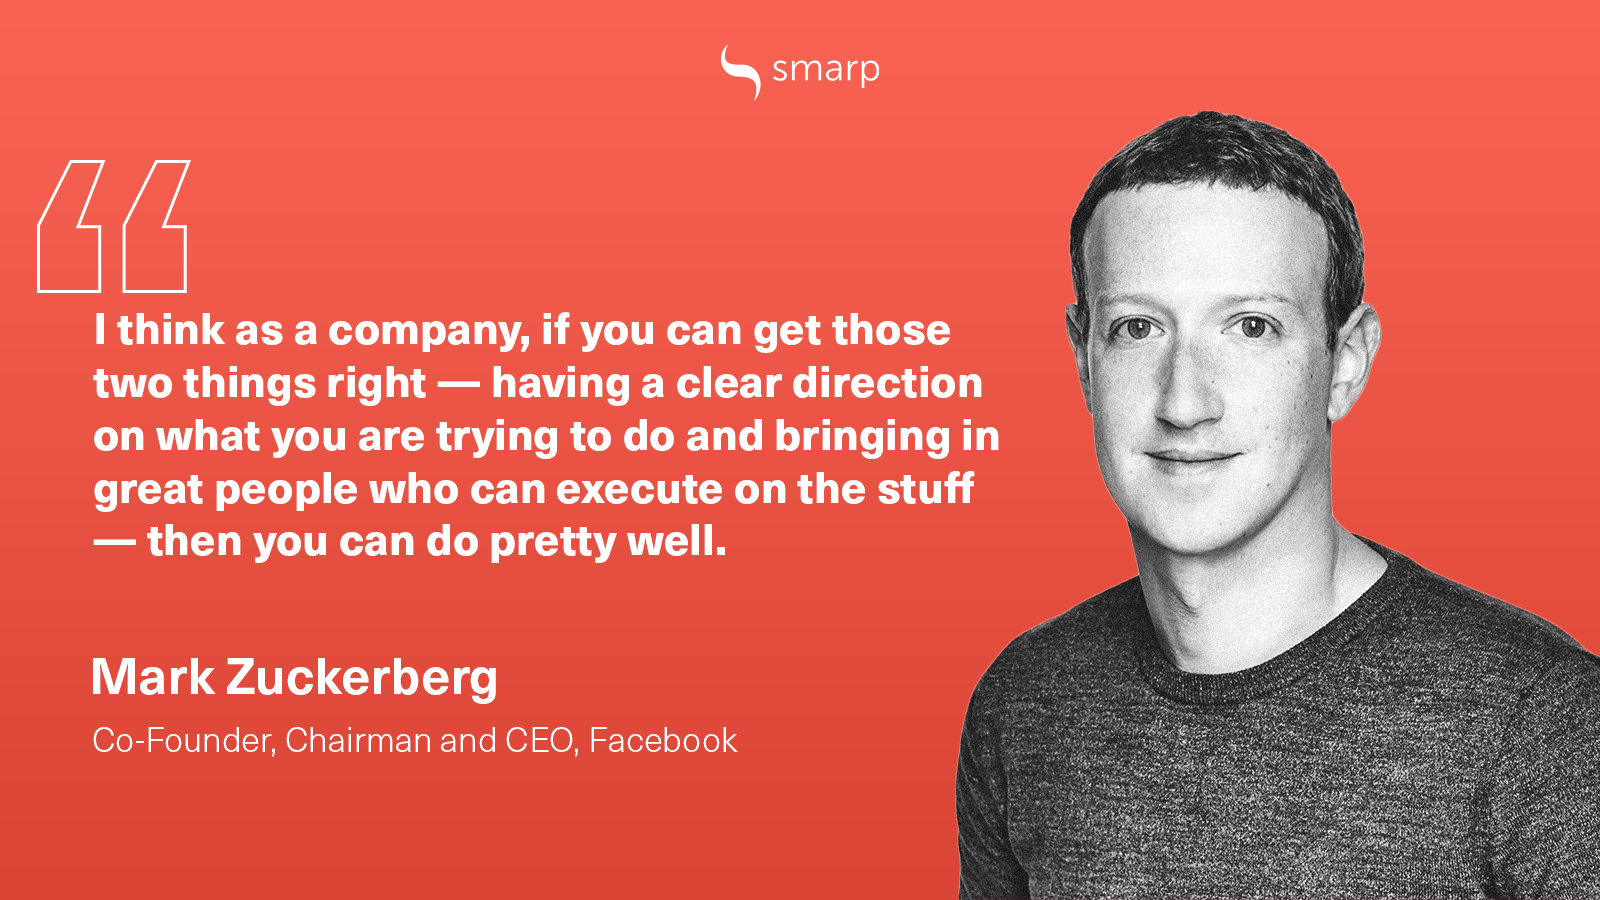 mark zuckerberg on developing leadership skills in the workplace